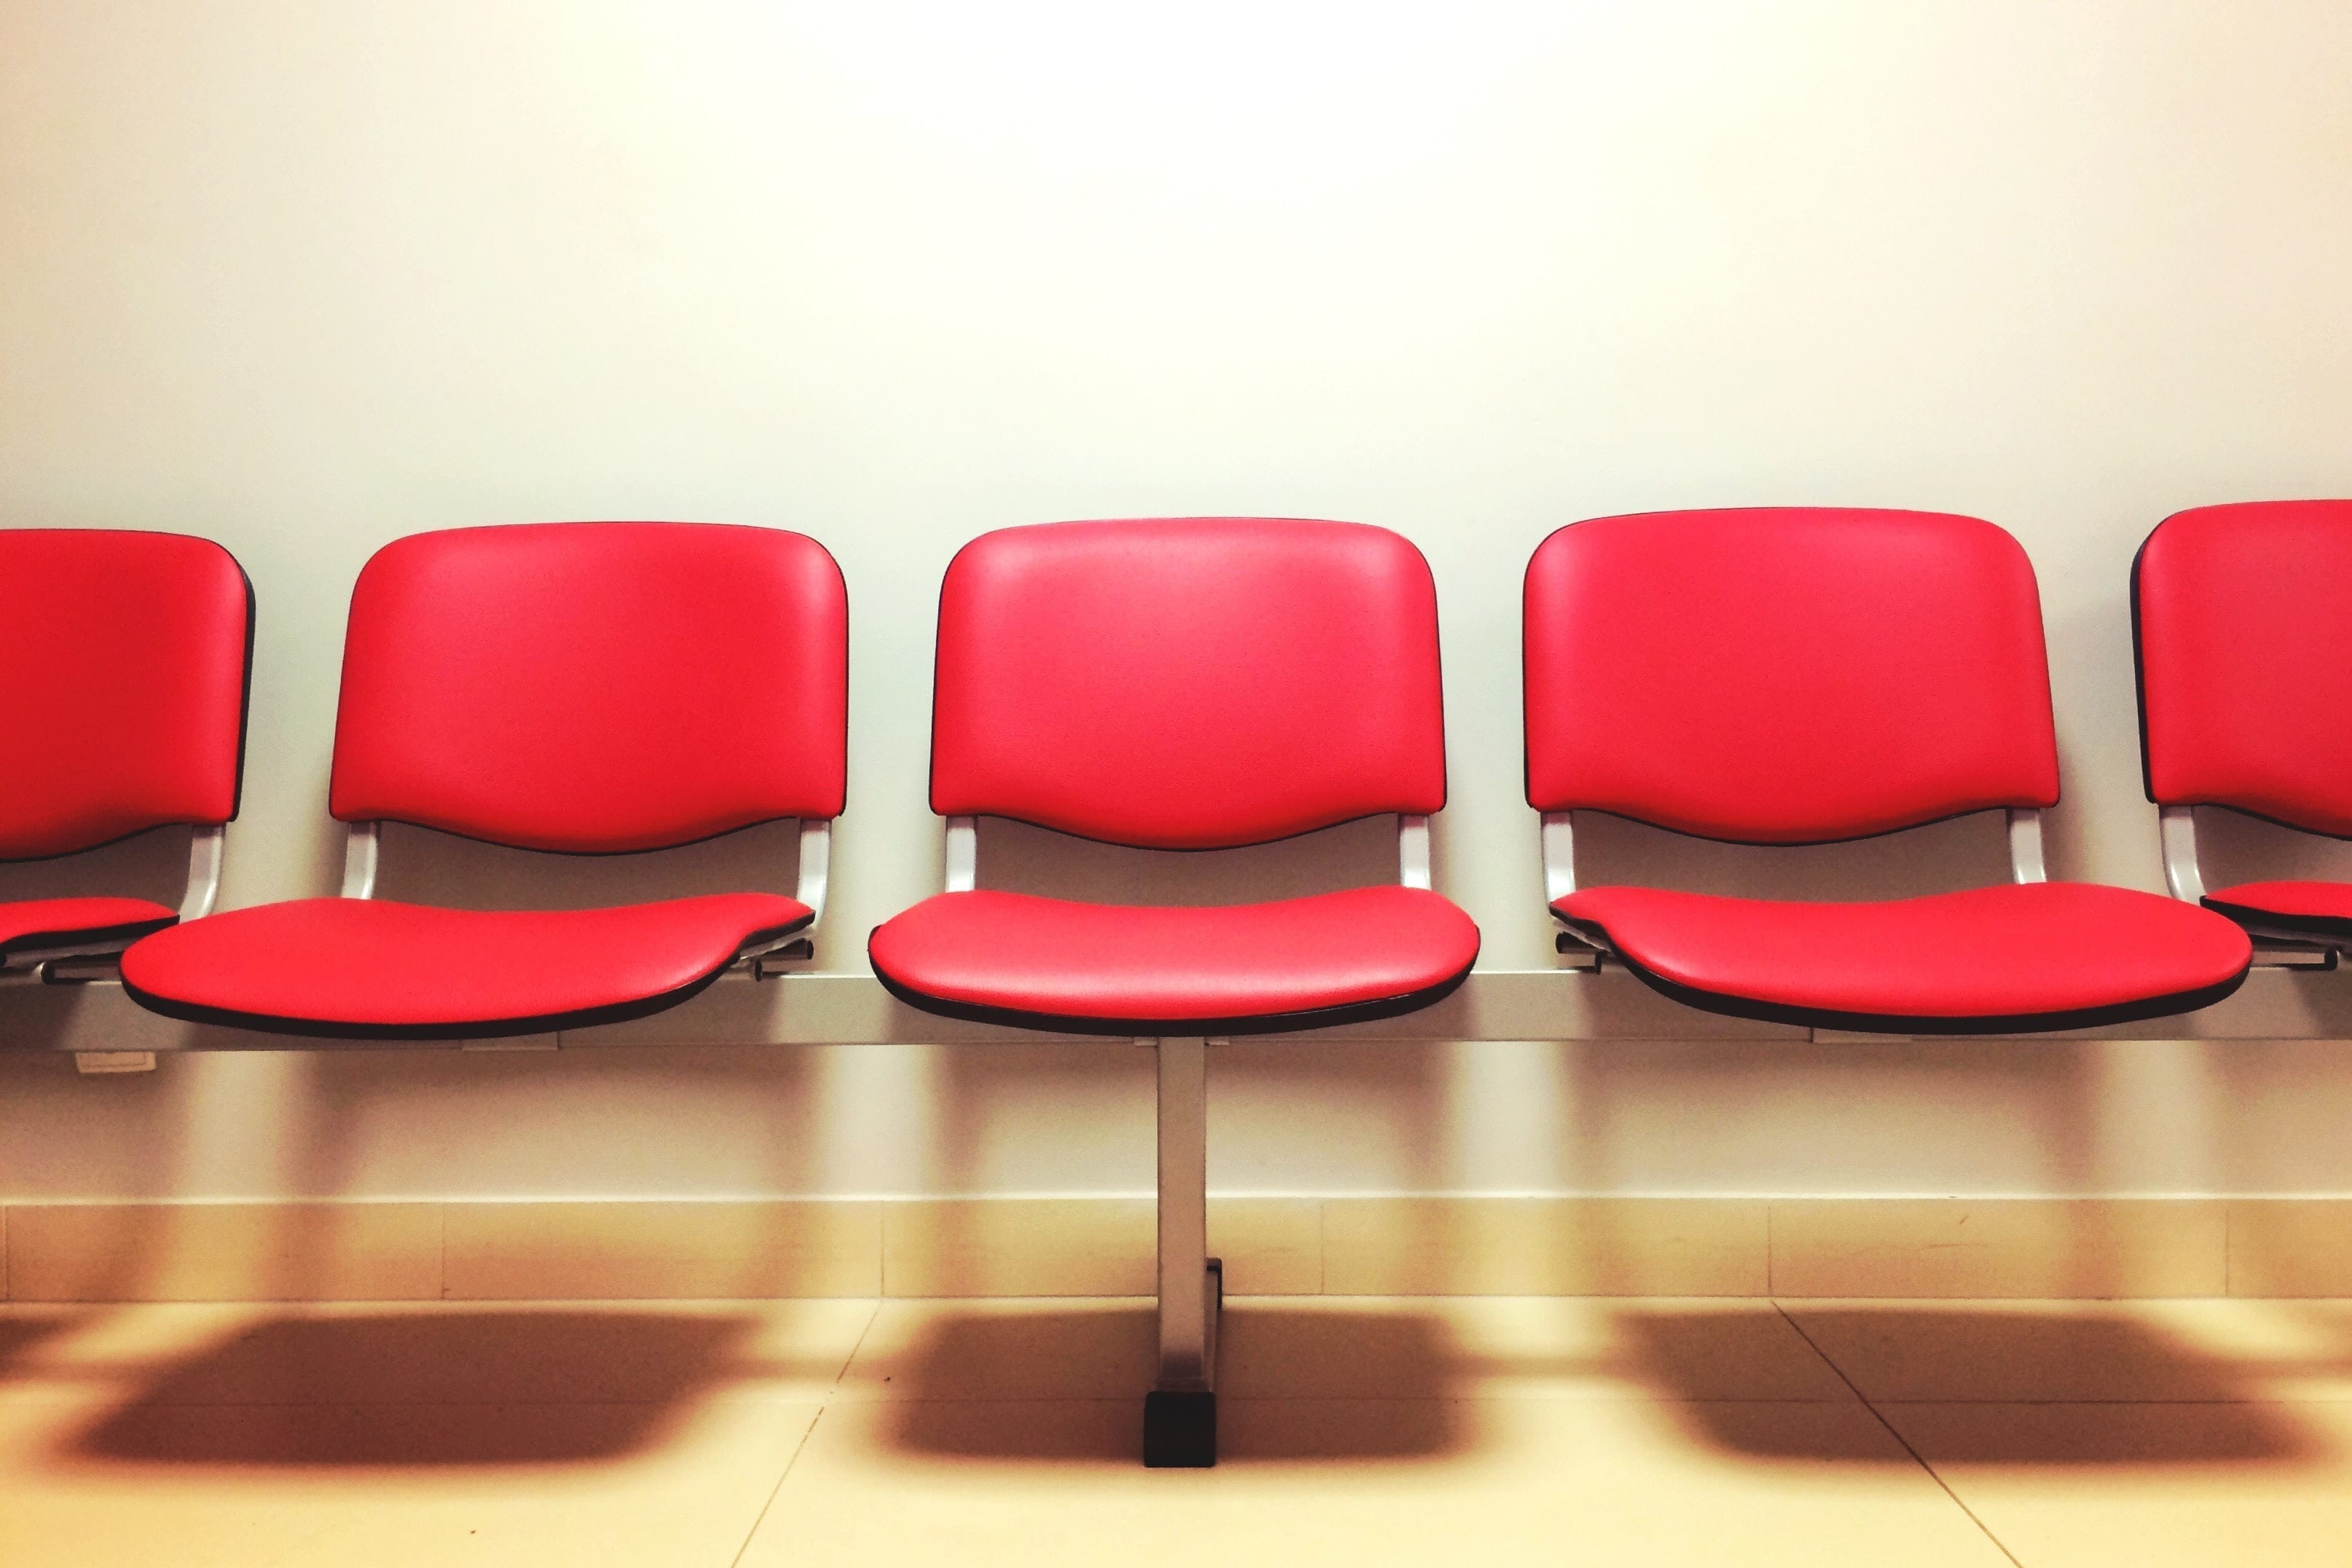 Photo: Waiting Room seats